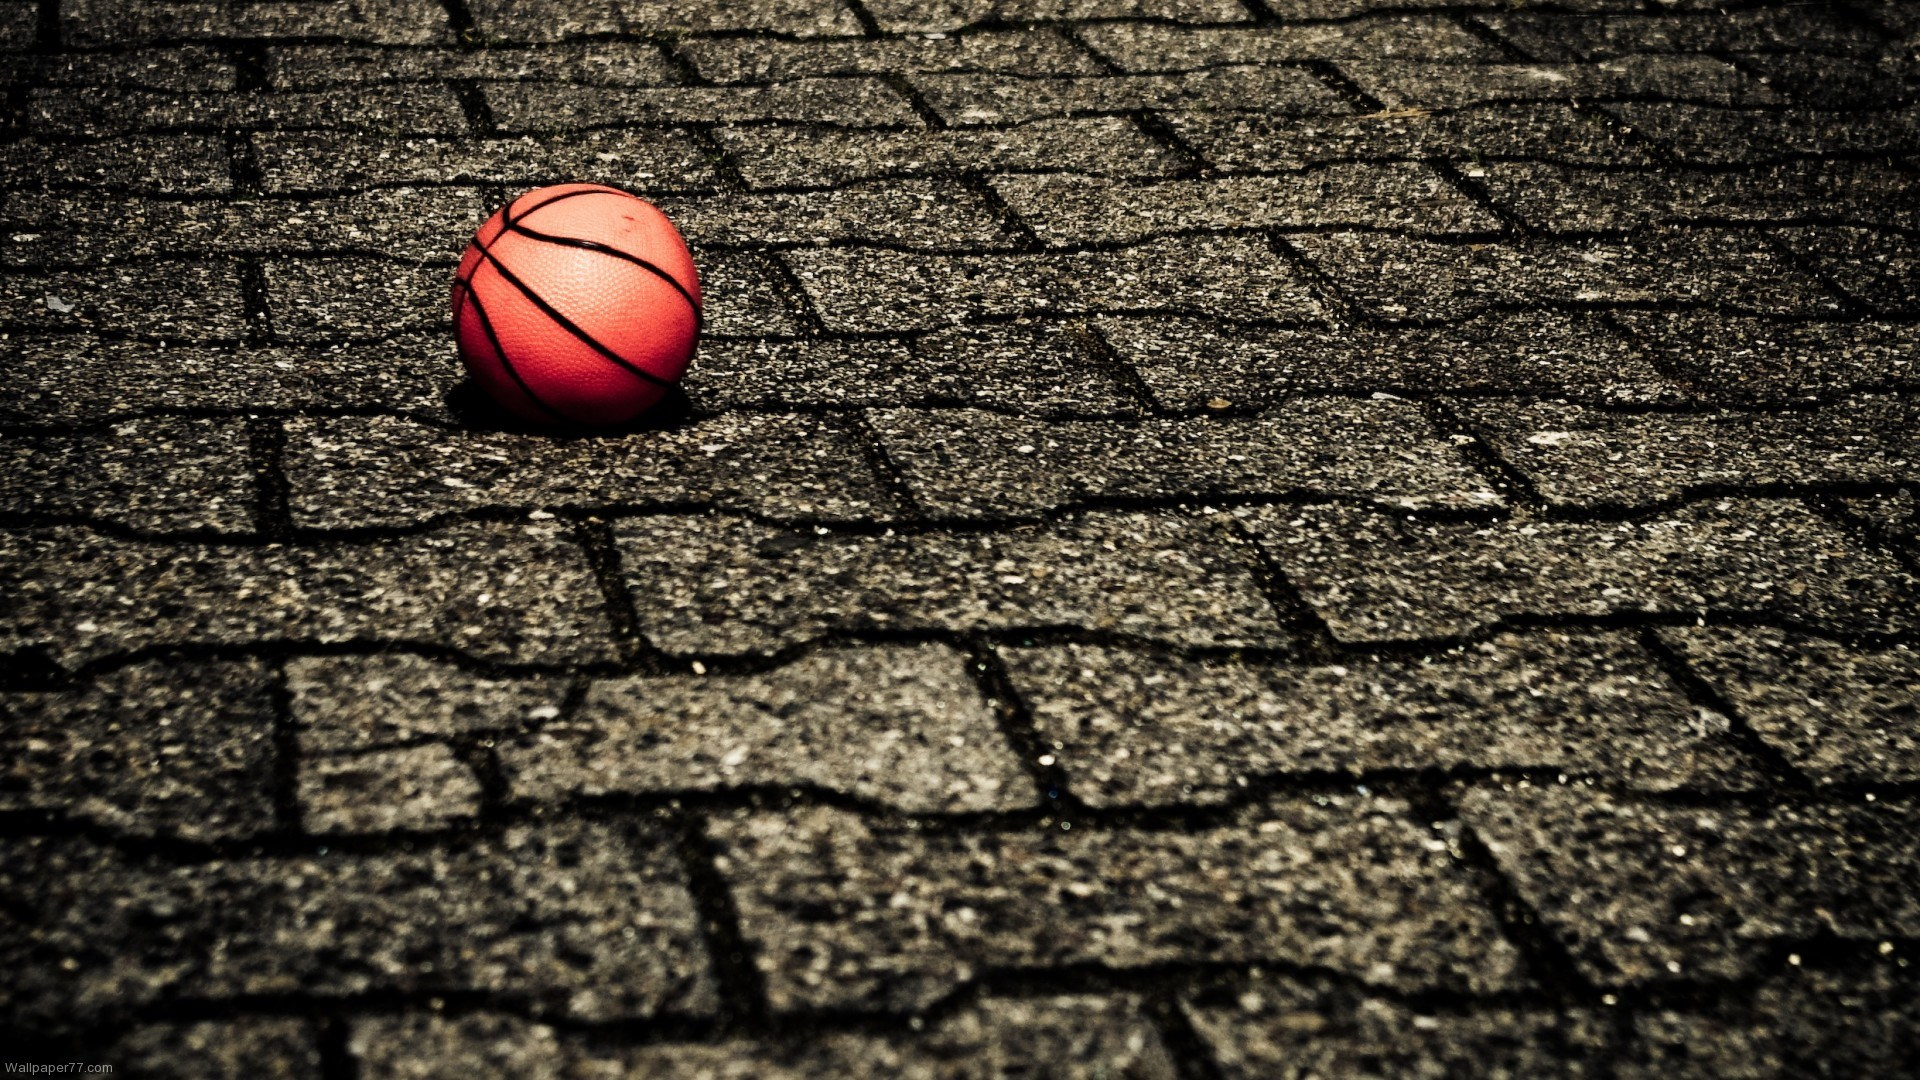 basketball-picture-Full-HD-Photos-1920-x-1080-kB-wallpaper-wp3602979